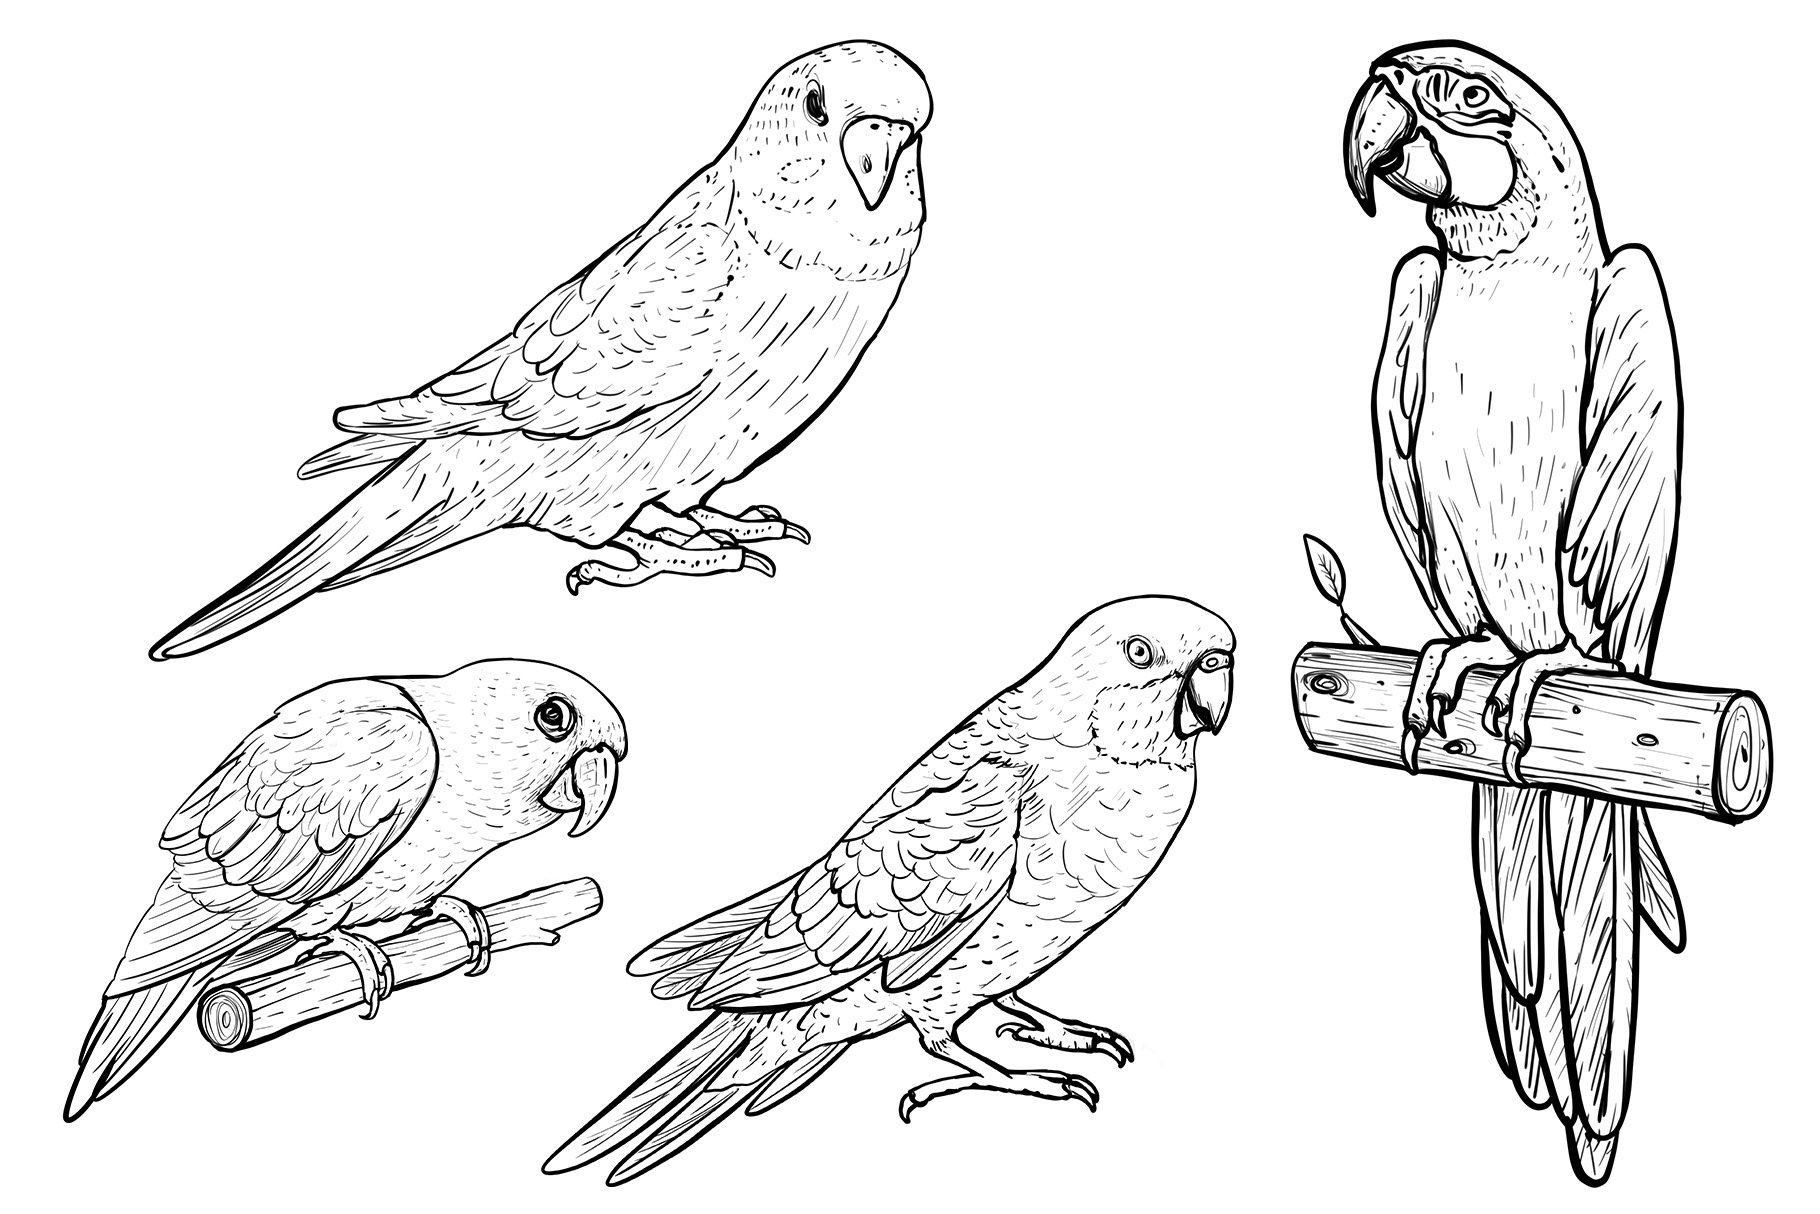 Drawn parrots example image 2